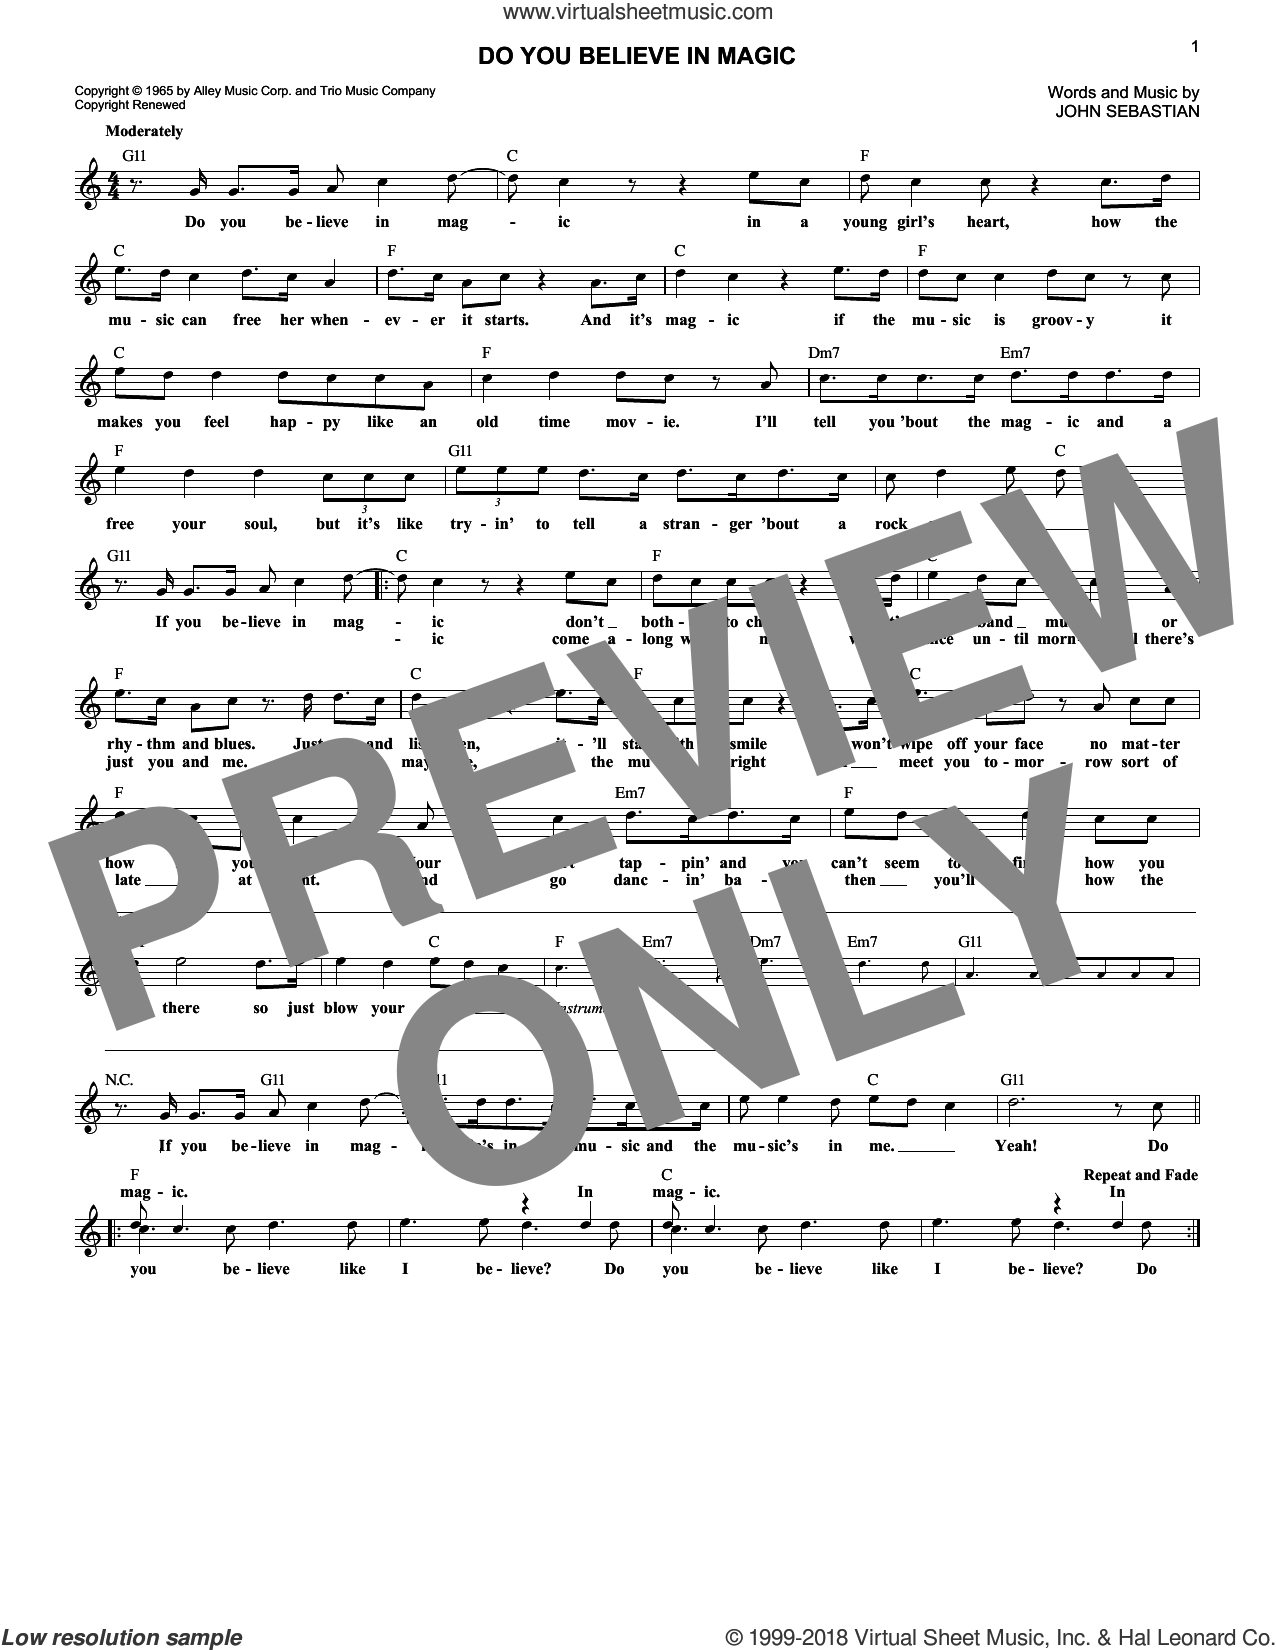 Do You Believe In Magic sheet music for voice and other instruments (fake book) by Lovin' Spoonful and John Sebastian, intermediate skill level